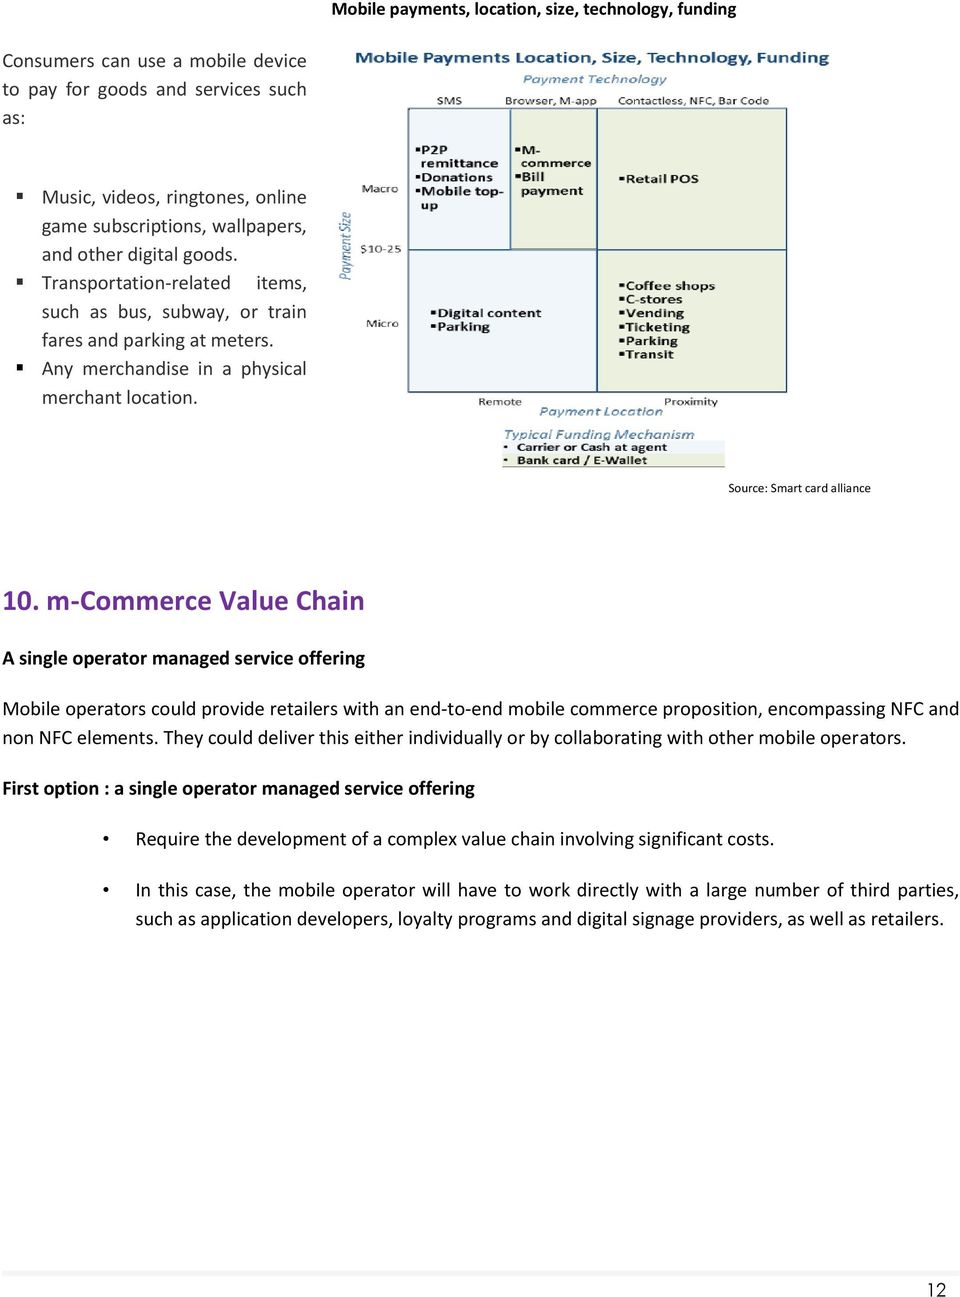 m-commerce Value Chain A single operator managed service offering Mobile operators could provide retailers with an end-to-end mobile commerce proposition, encompassing NFC and non NFC elements.